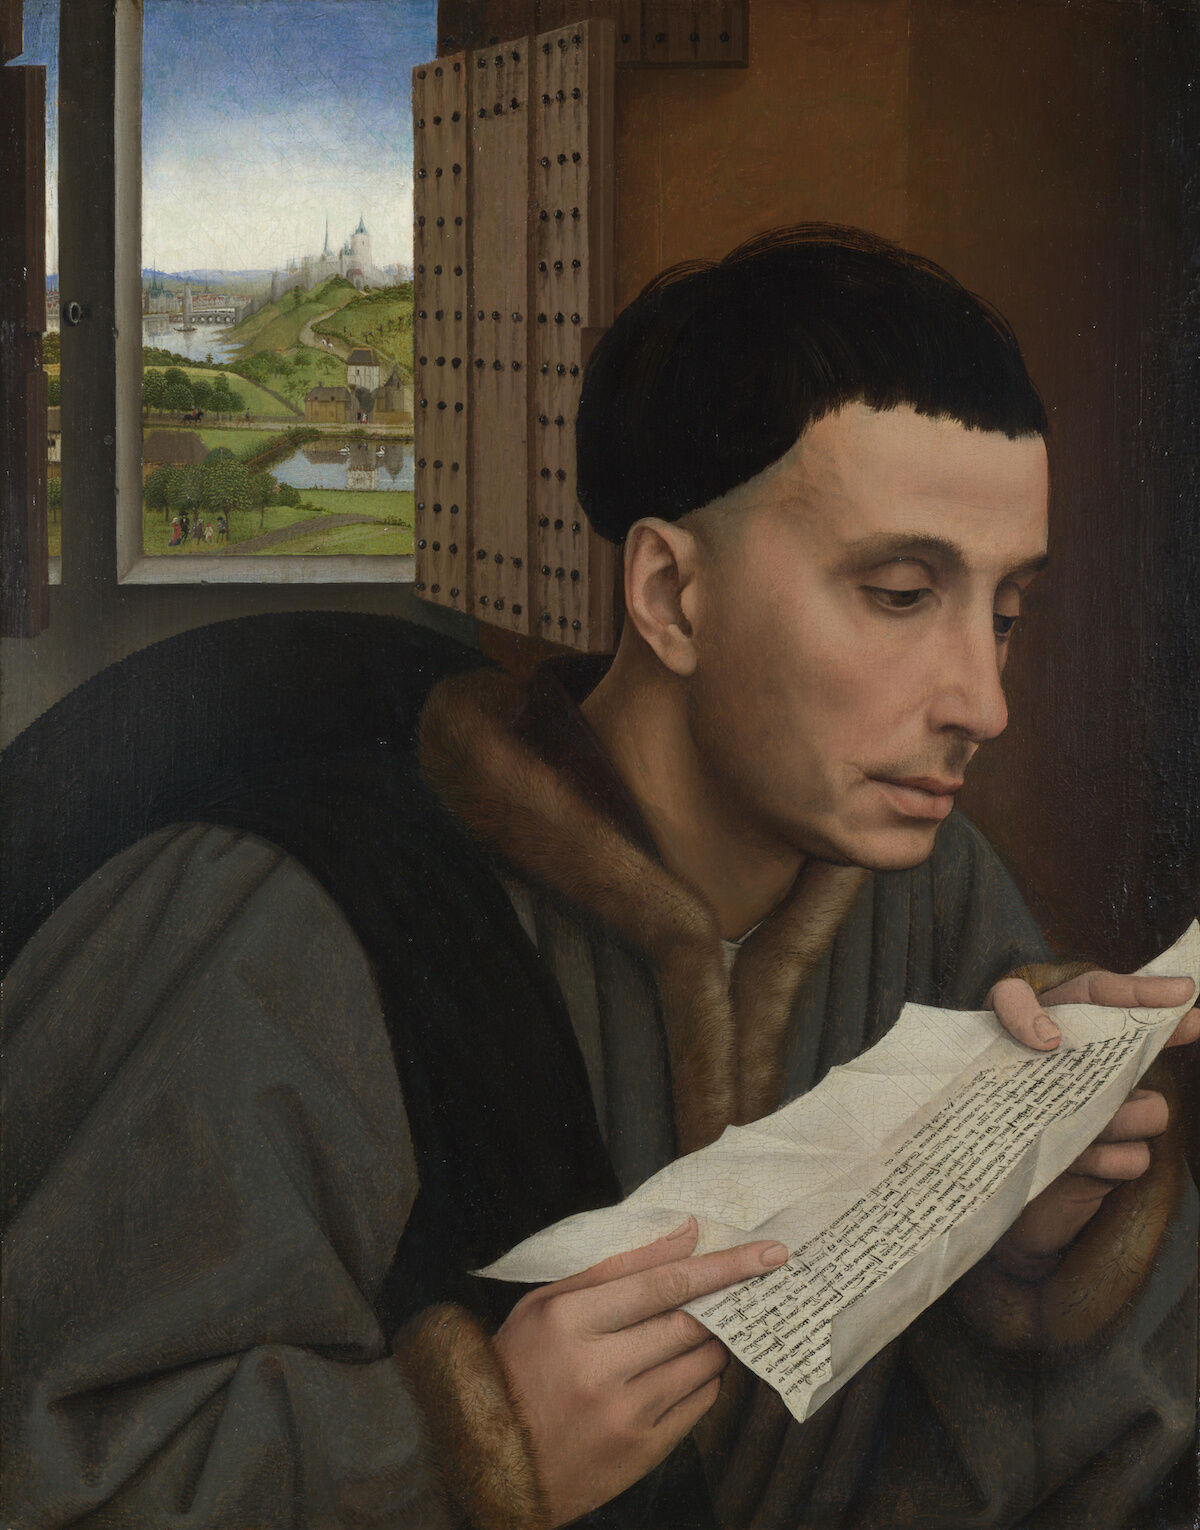 Painting attributed to the workshop of Rogier van der Weyden, A Man Reading (Saint Ivo?), about 1450. National Gallery, London, via Wikimedia Commons.